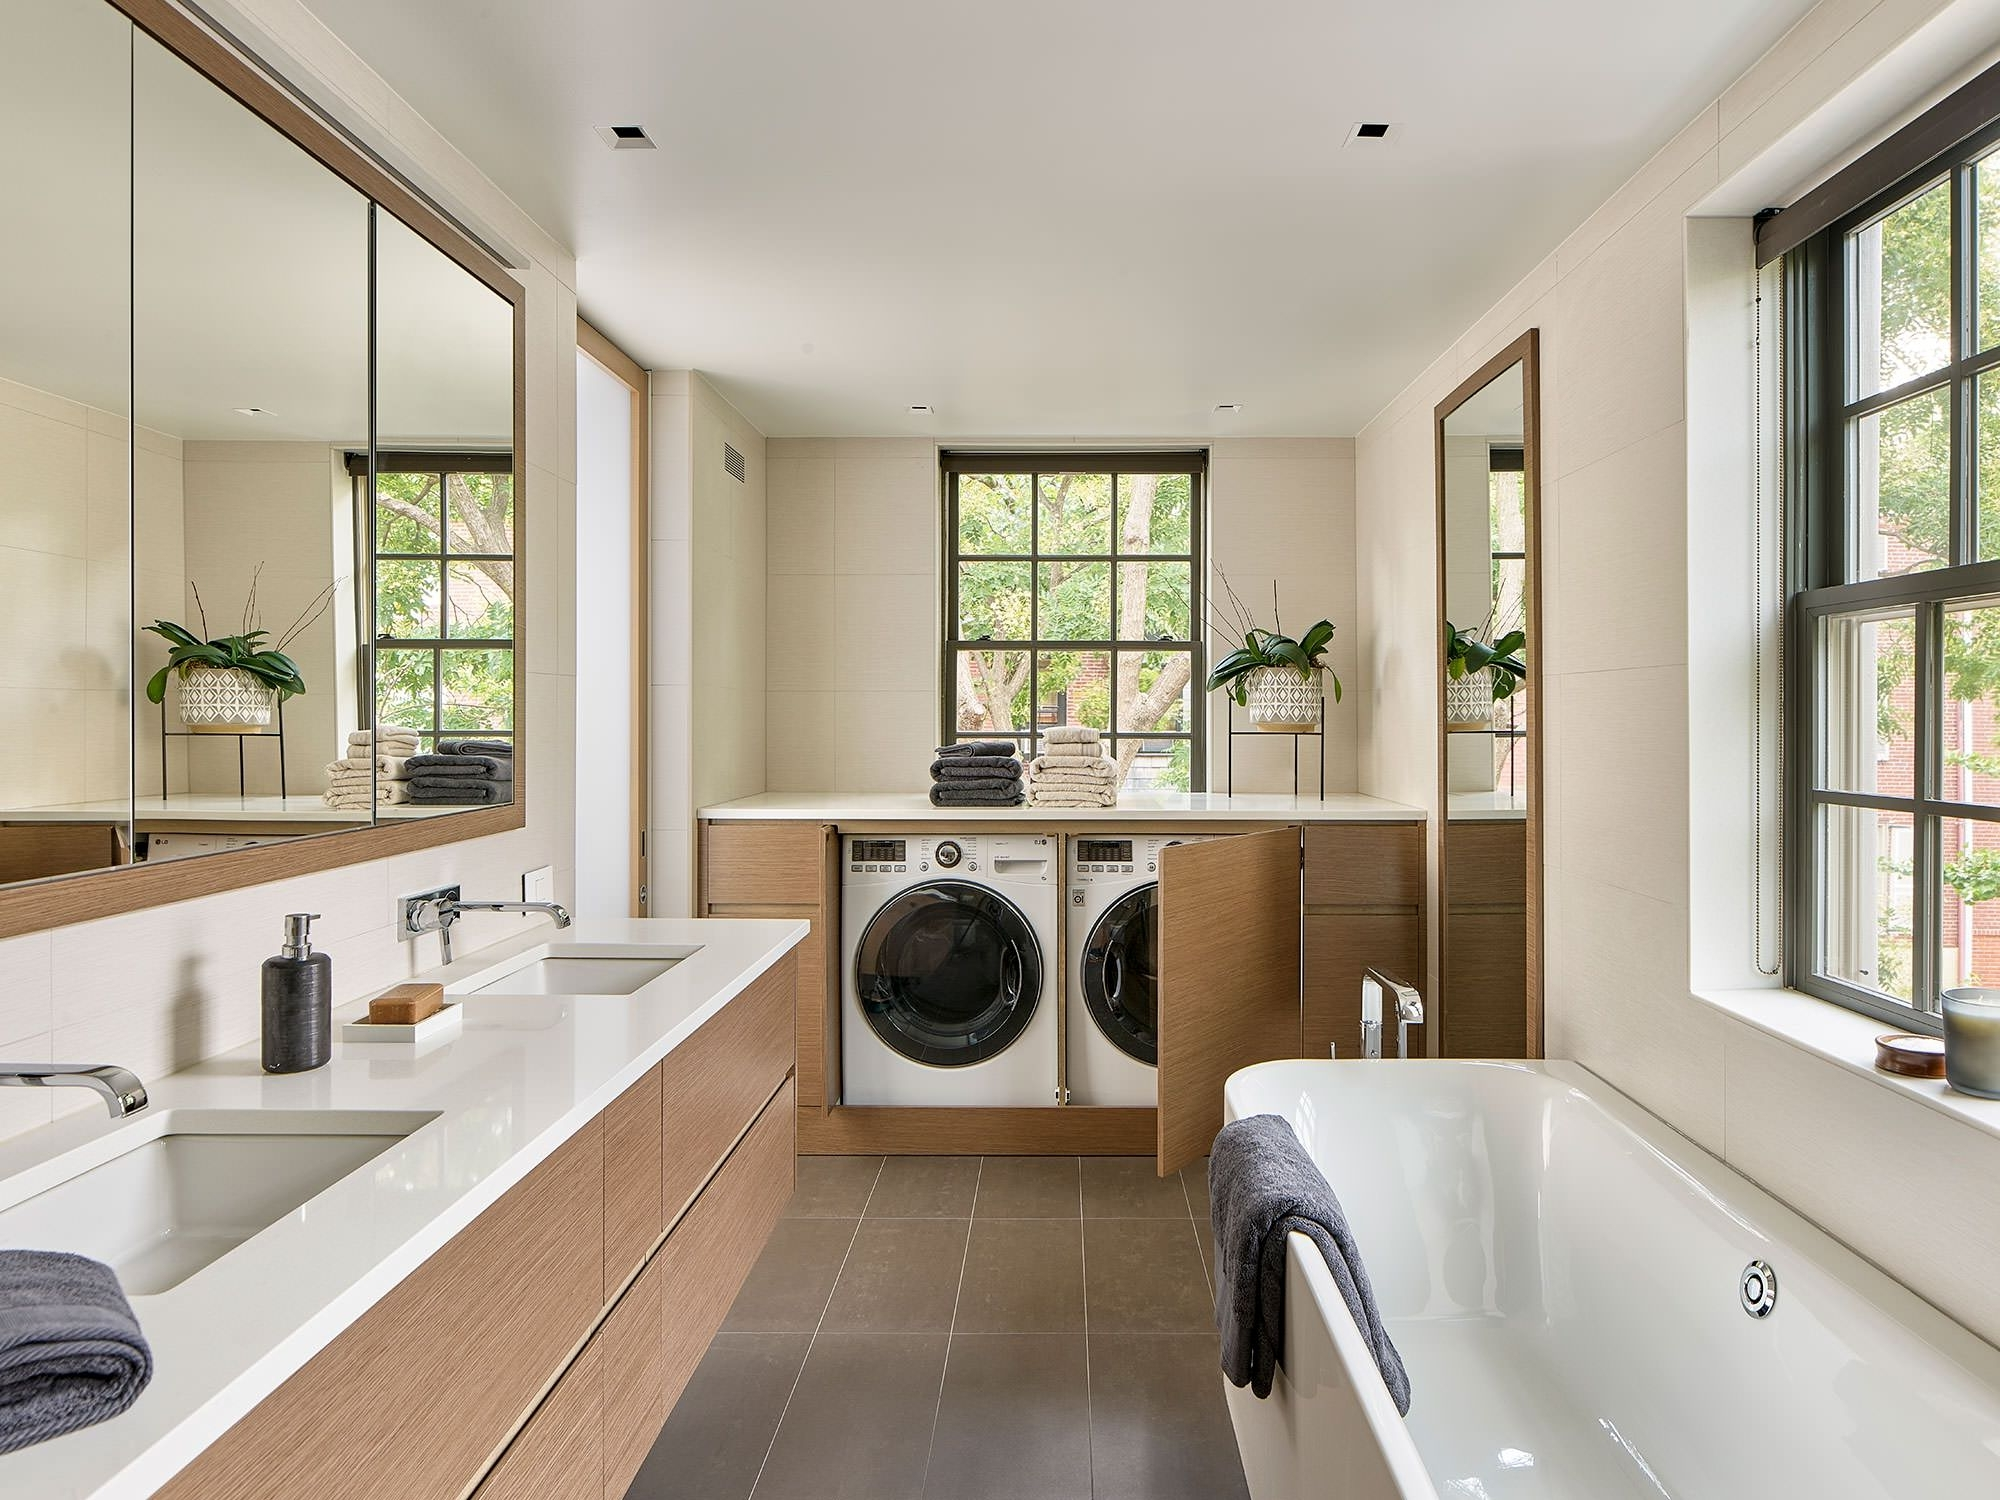 75 Beautiful Bathroom/Laundry Room Pictures & Ideas Designs For Laundry Room Bathroom Combination